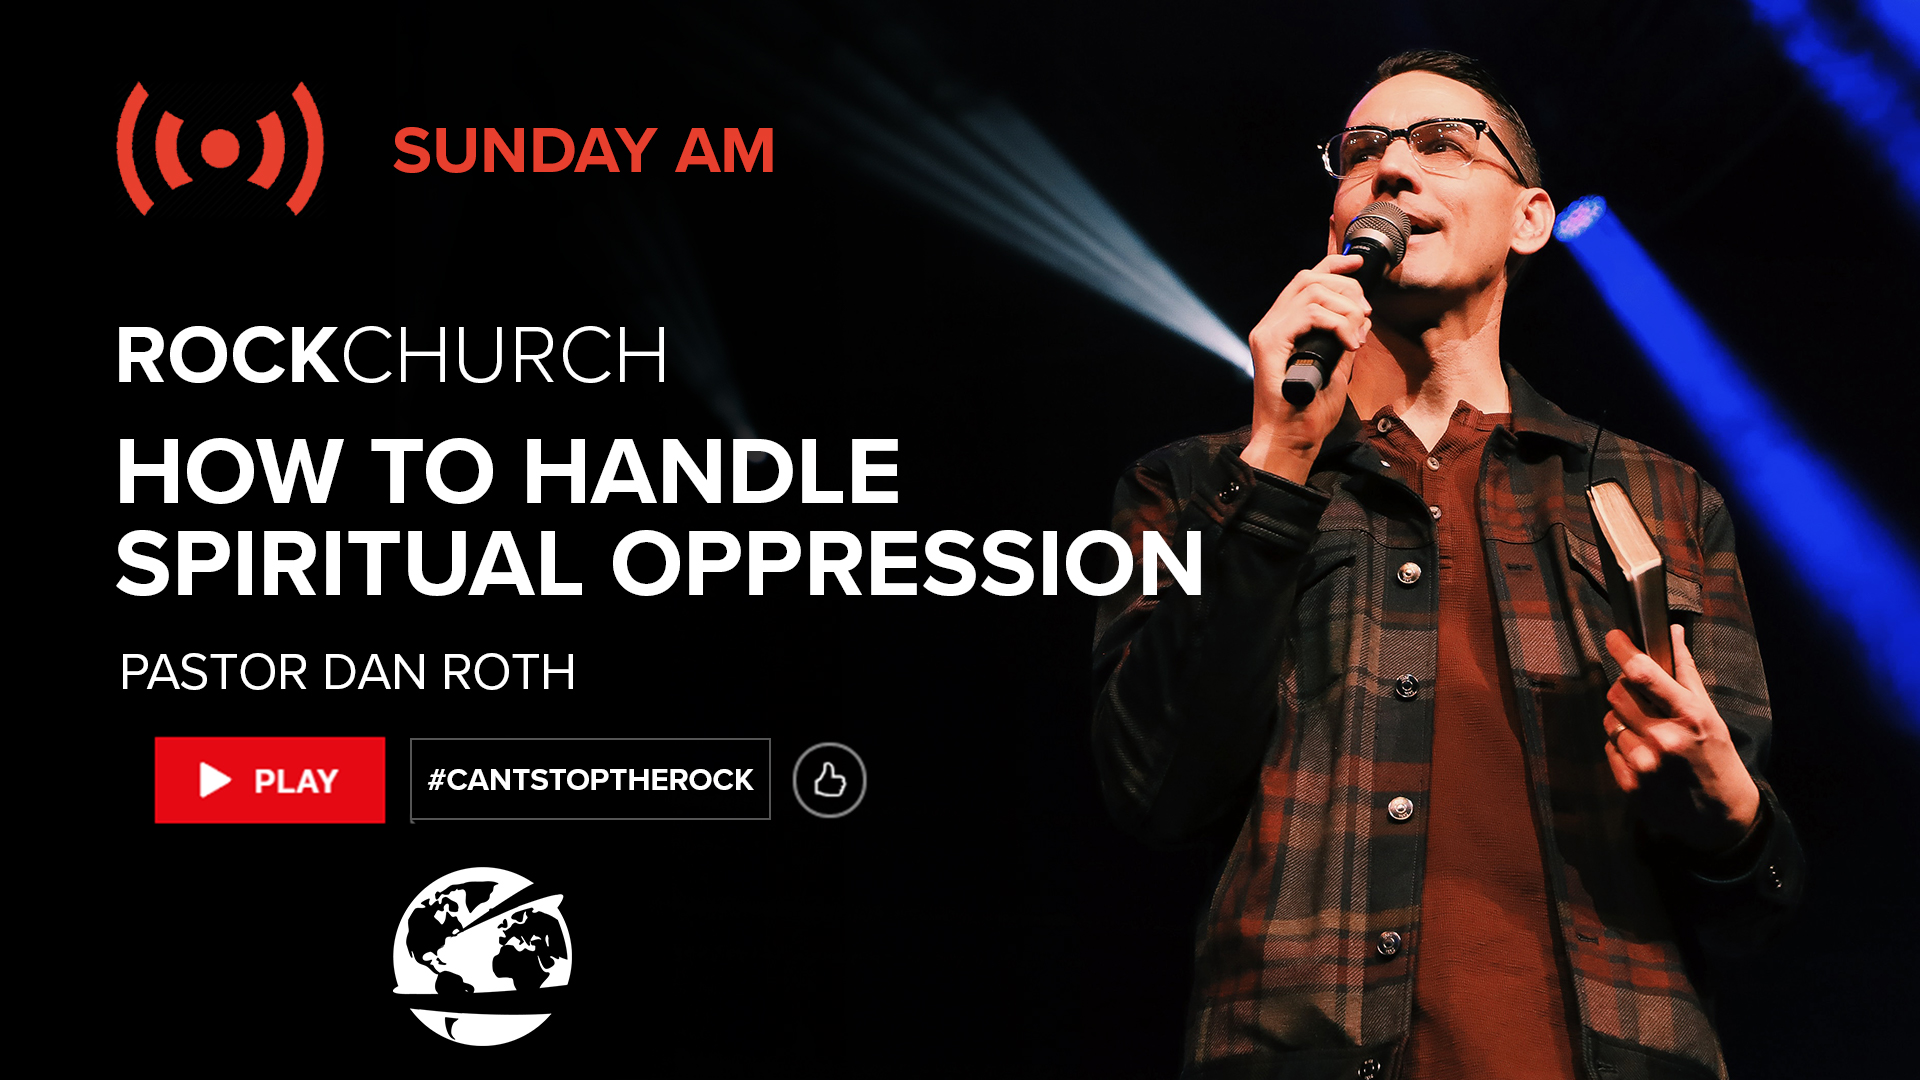 Watch How to Handle Spiritual Oppression